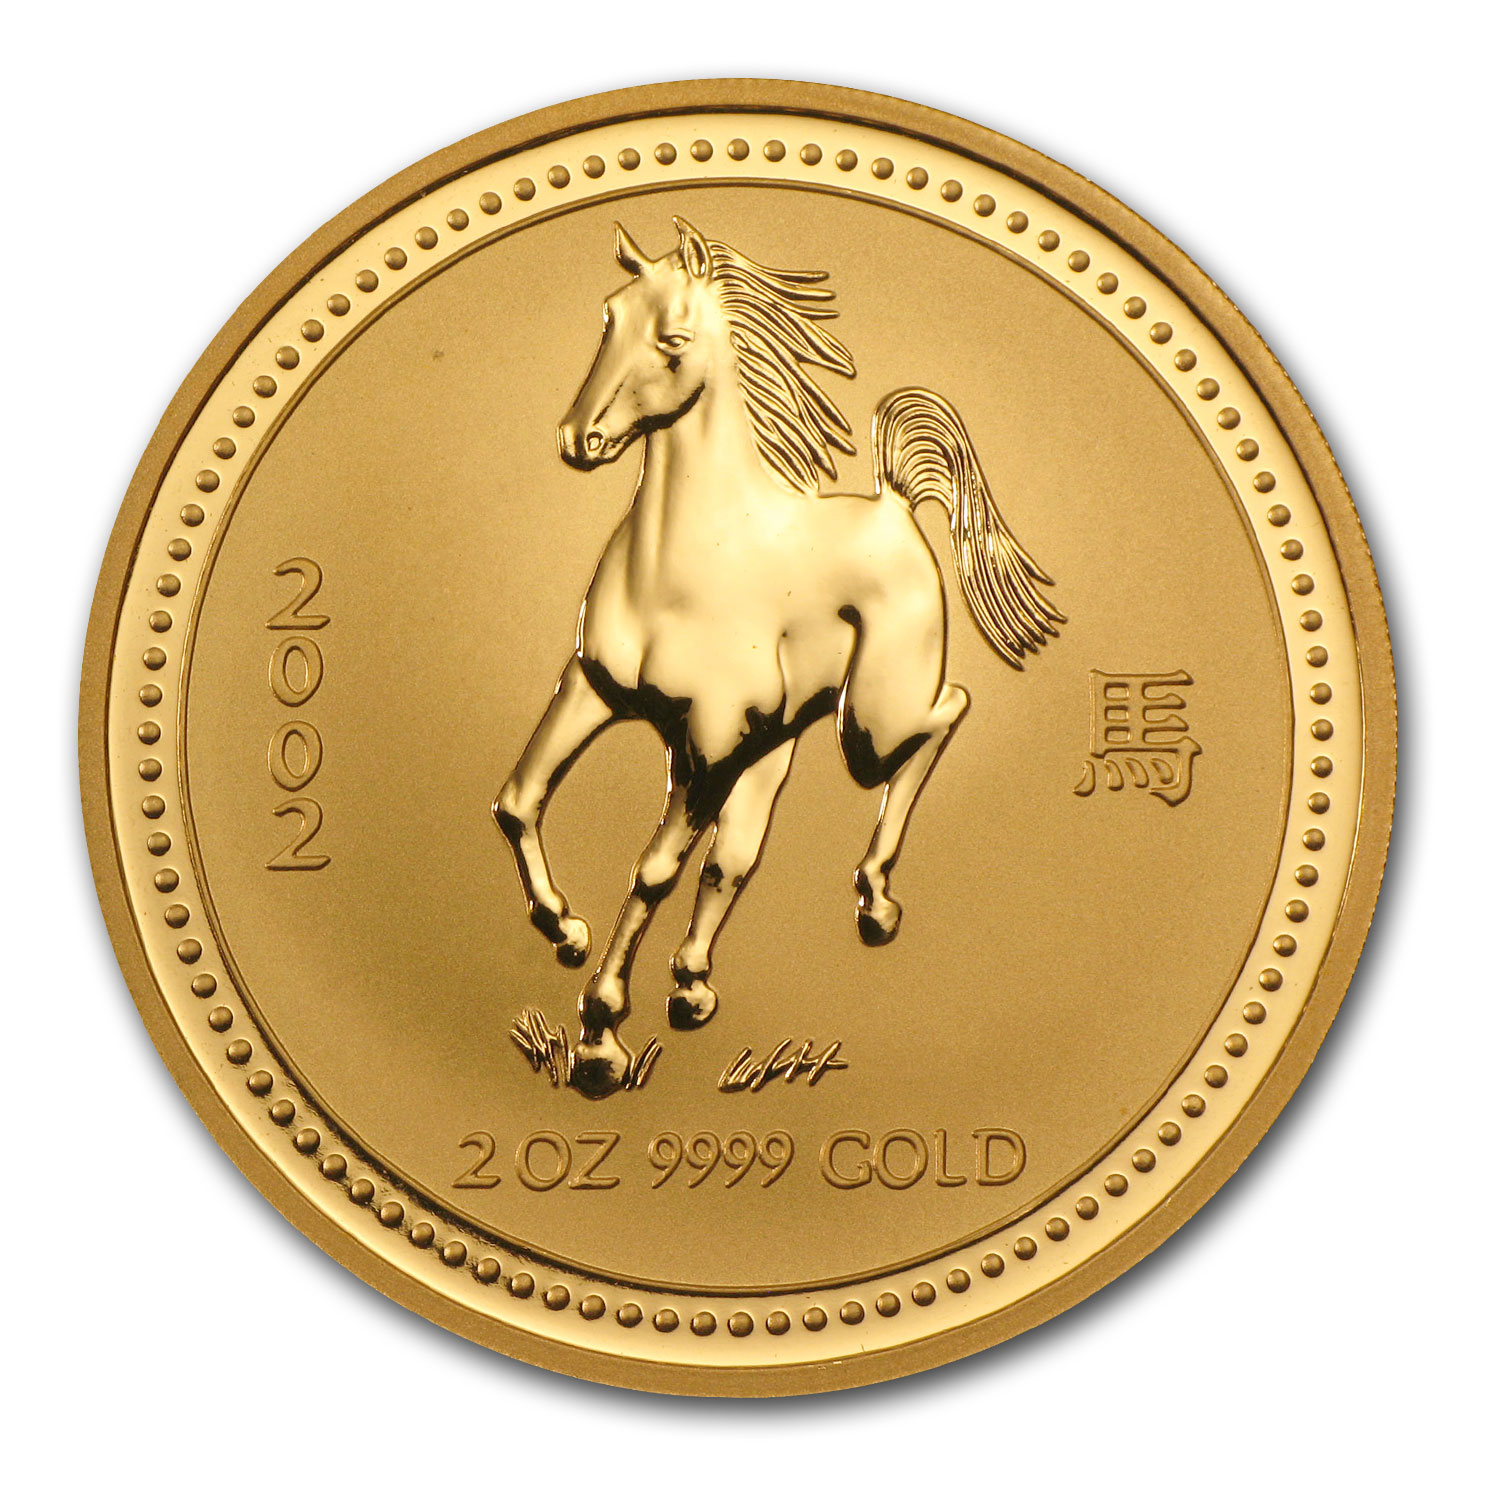 2002 2 oz Gold Year of the Horse Lunar Coin (SI) Key Date!